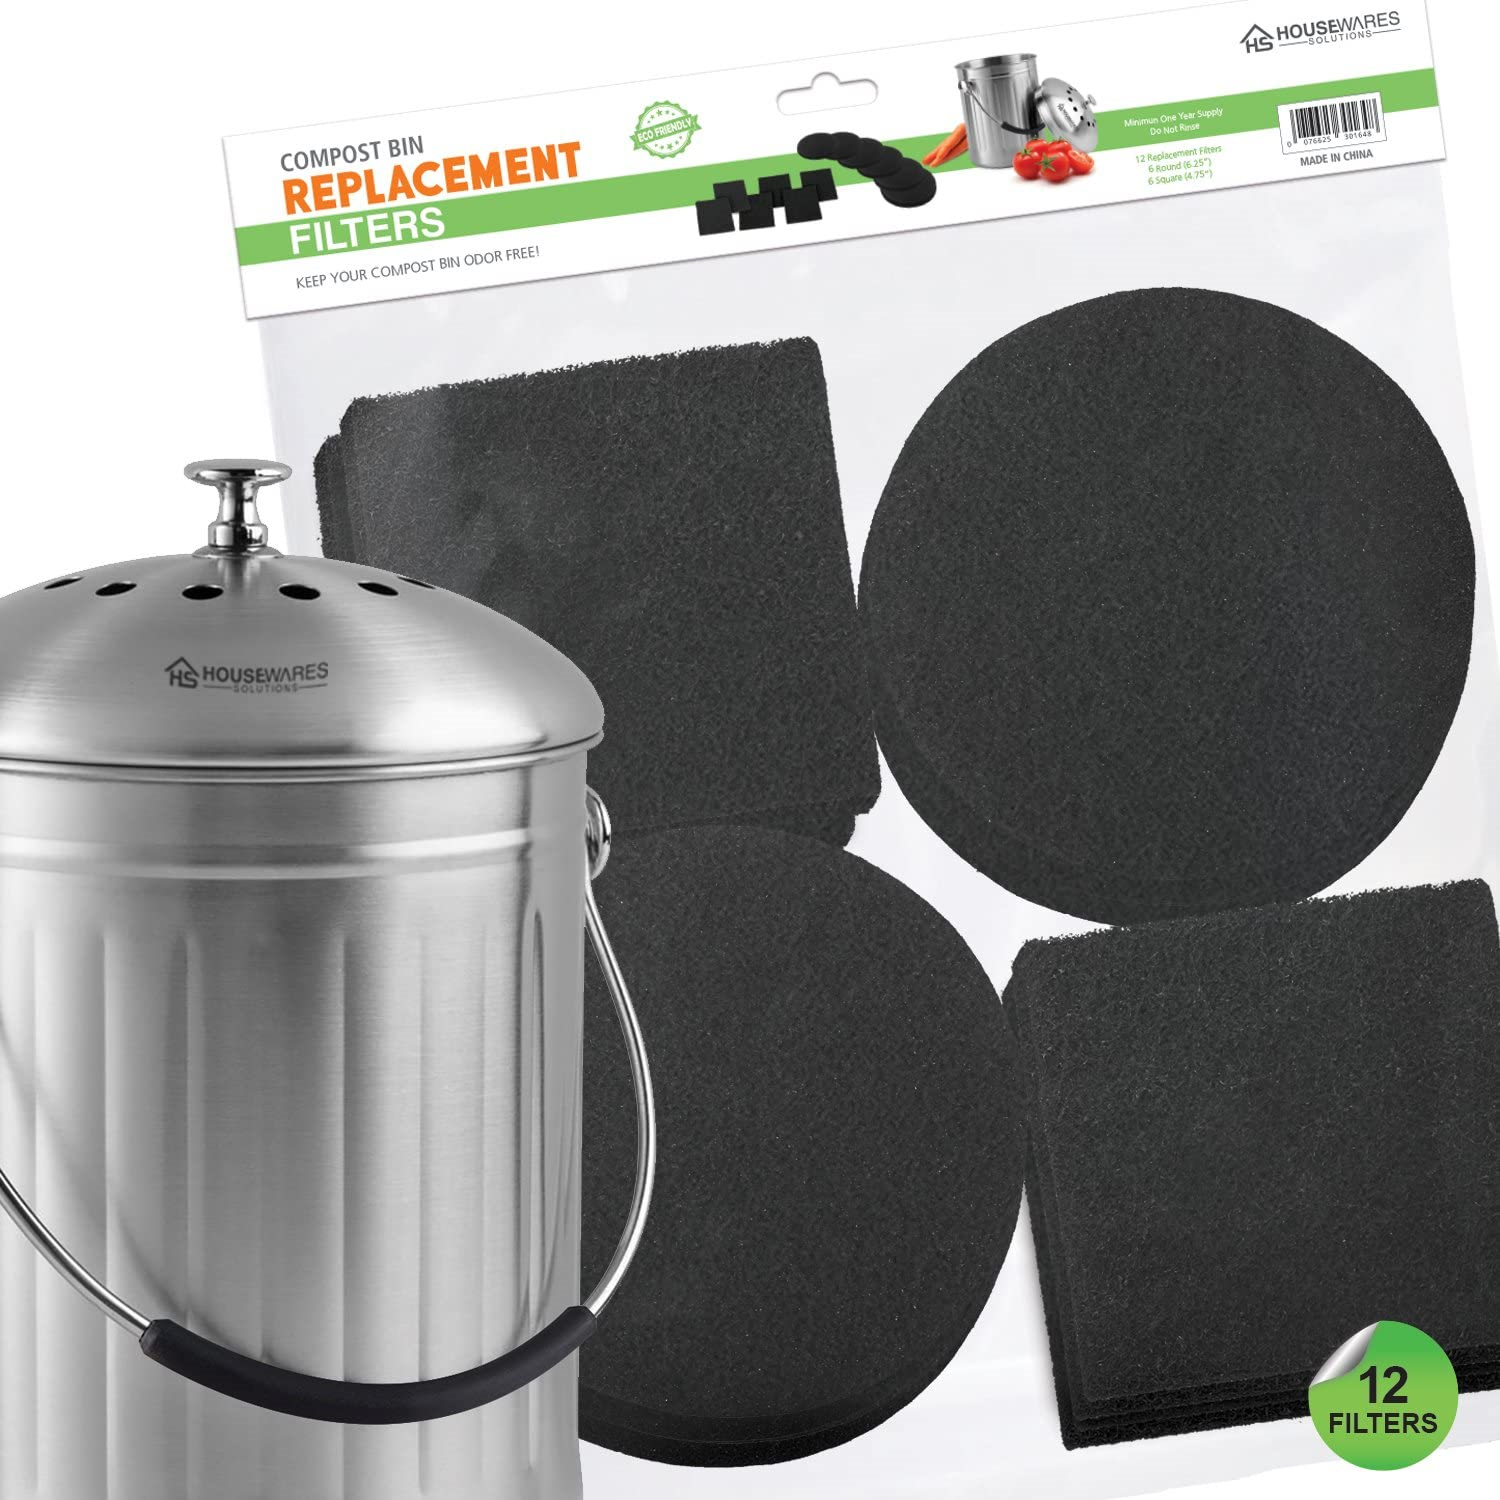 crofton countertop compost bin filter replacement  12 Pieces Activated Carbon Filters Compost Bin Replacement ..